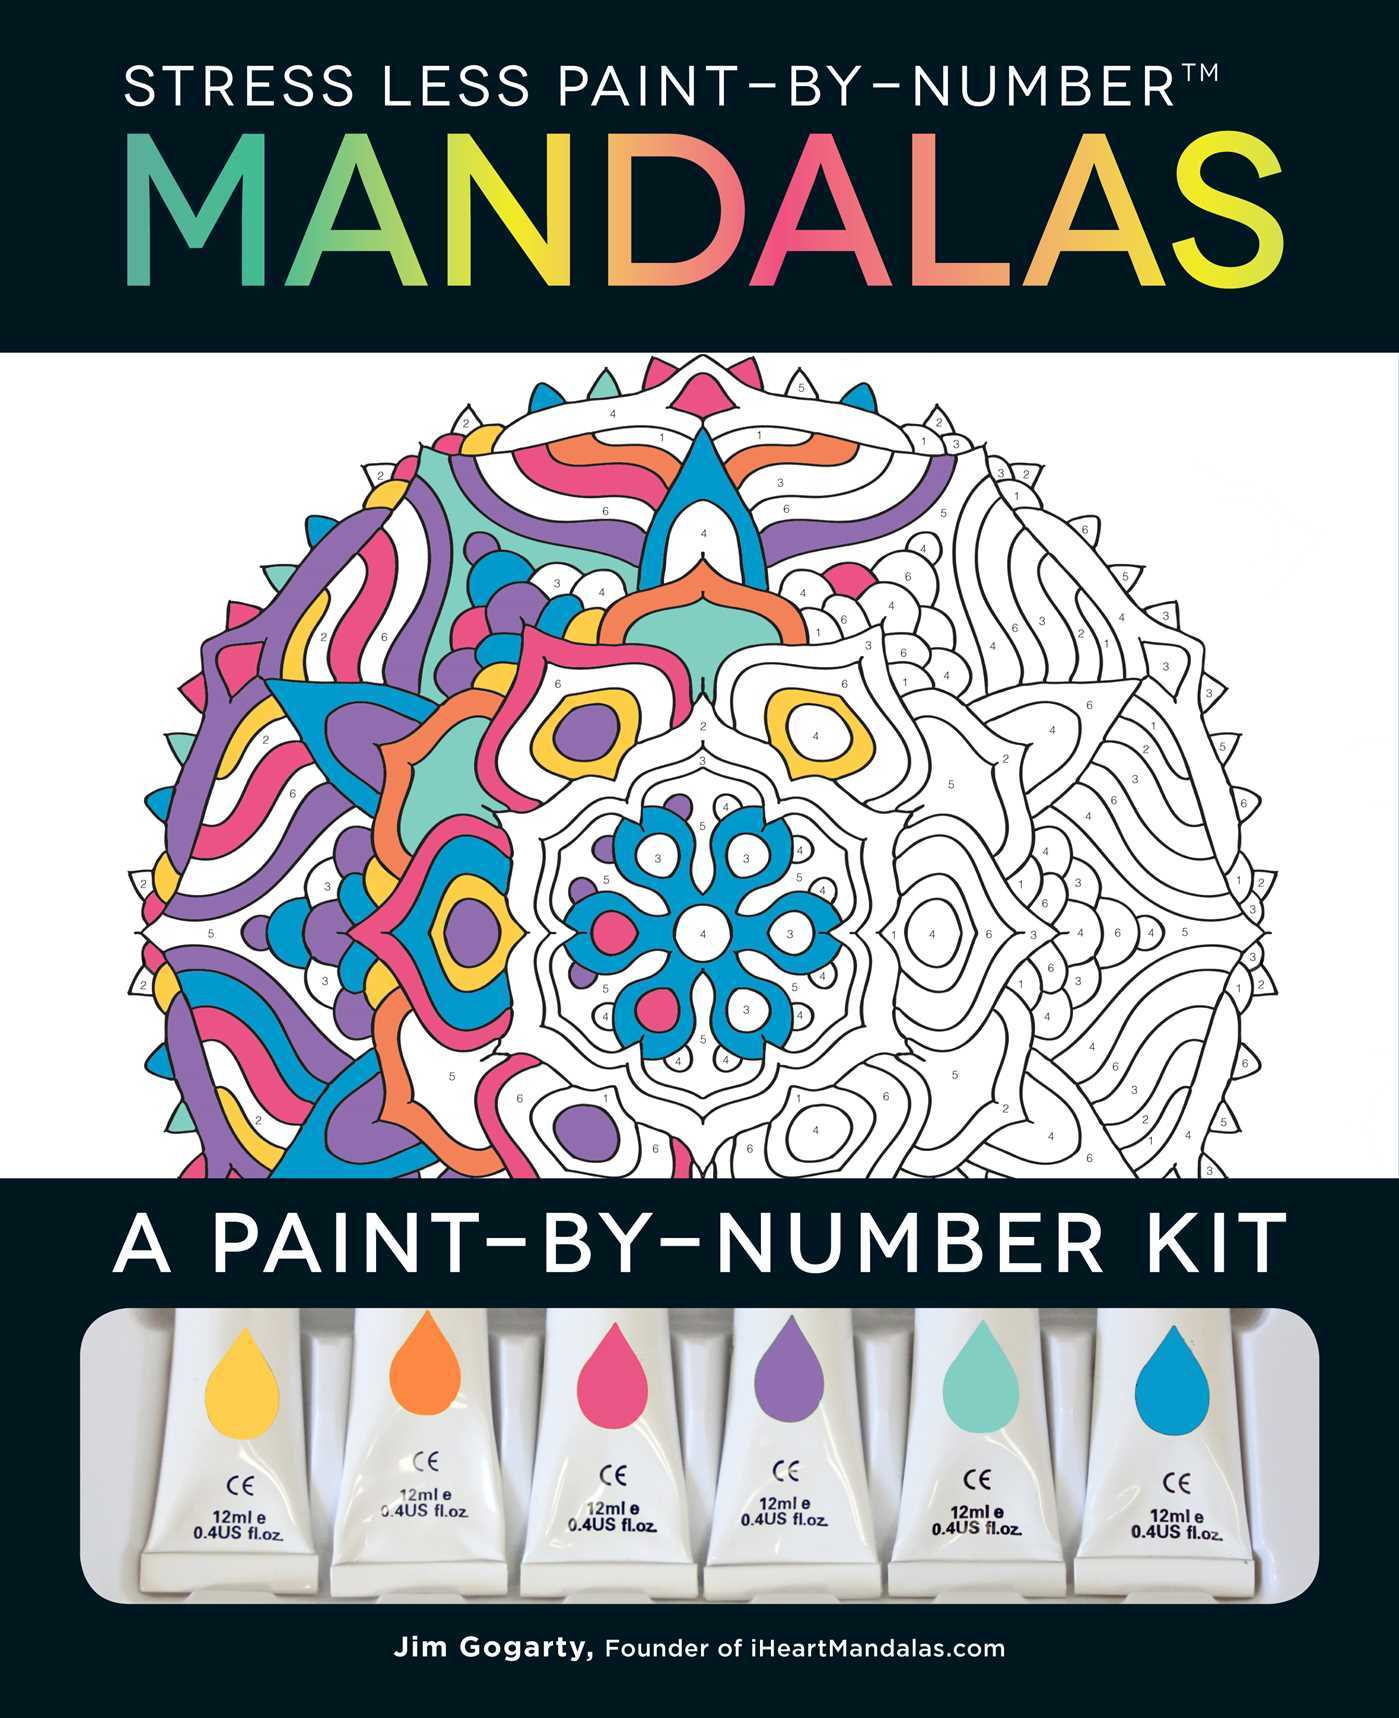 Stress Less Paint-By-Number Mandalas: A Paint-By-Number Kit